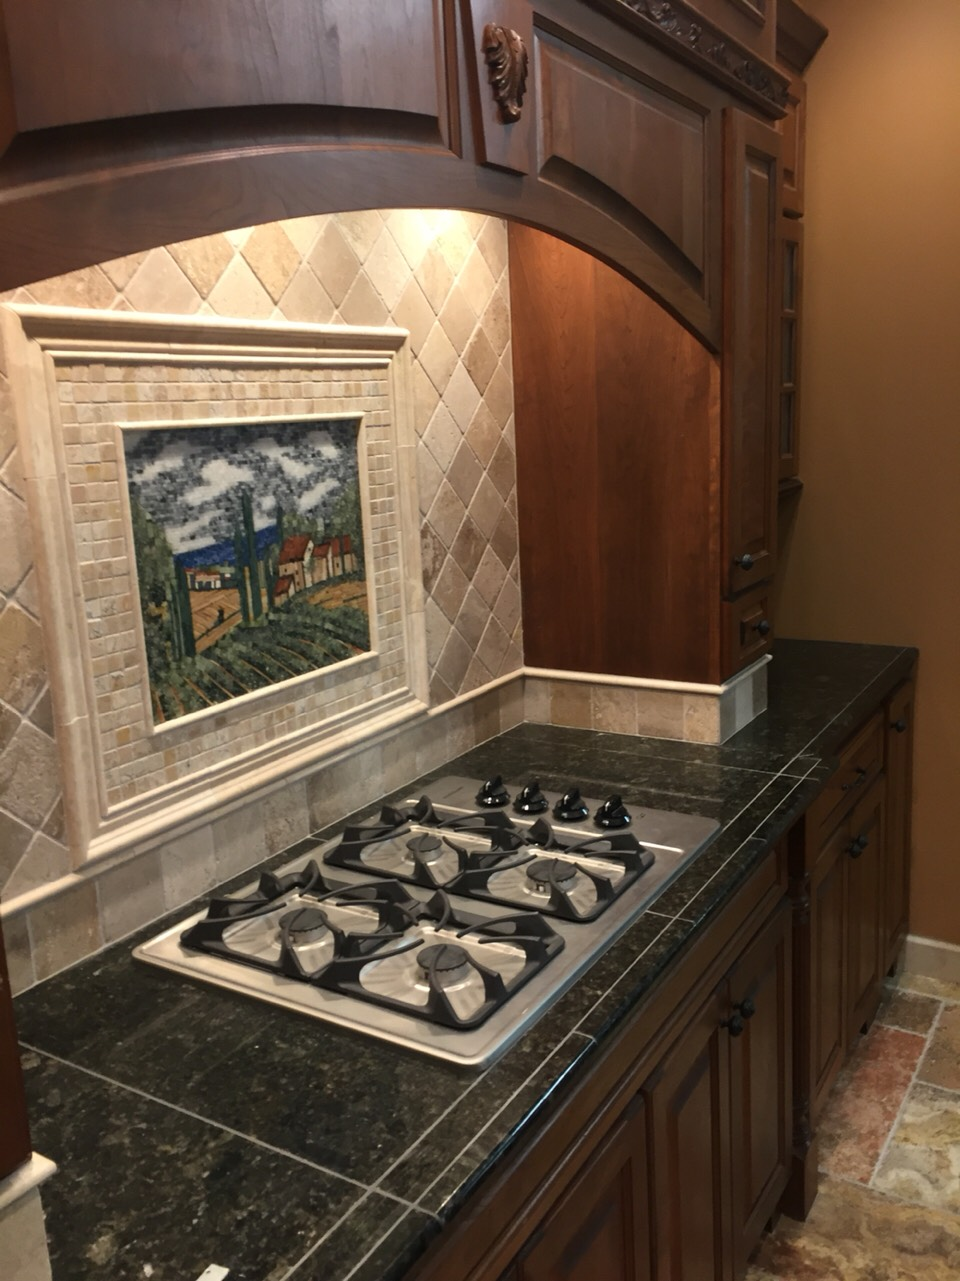 Gorgeous kitchen! The mural makes it seem like a nice Window over looking the country side